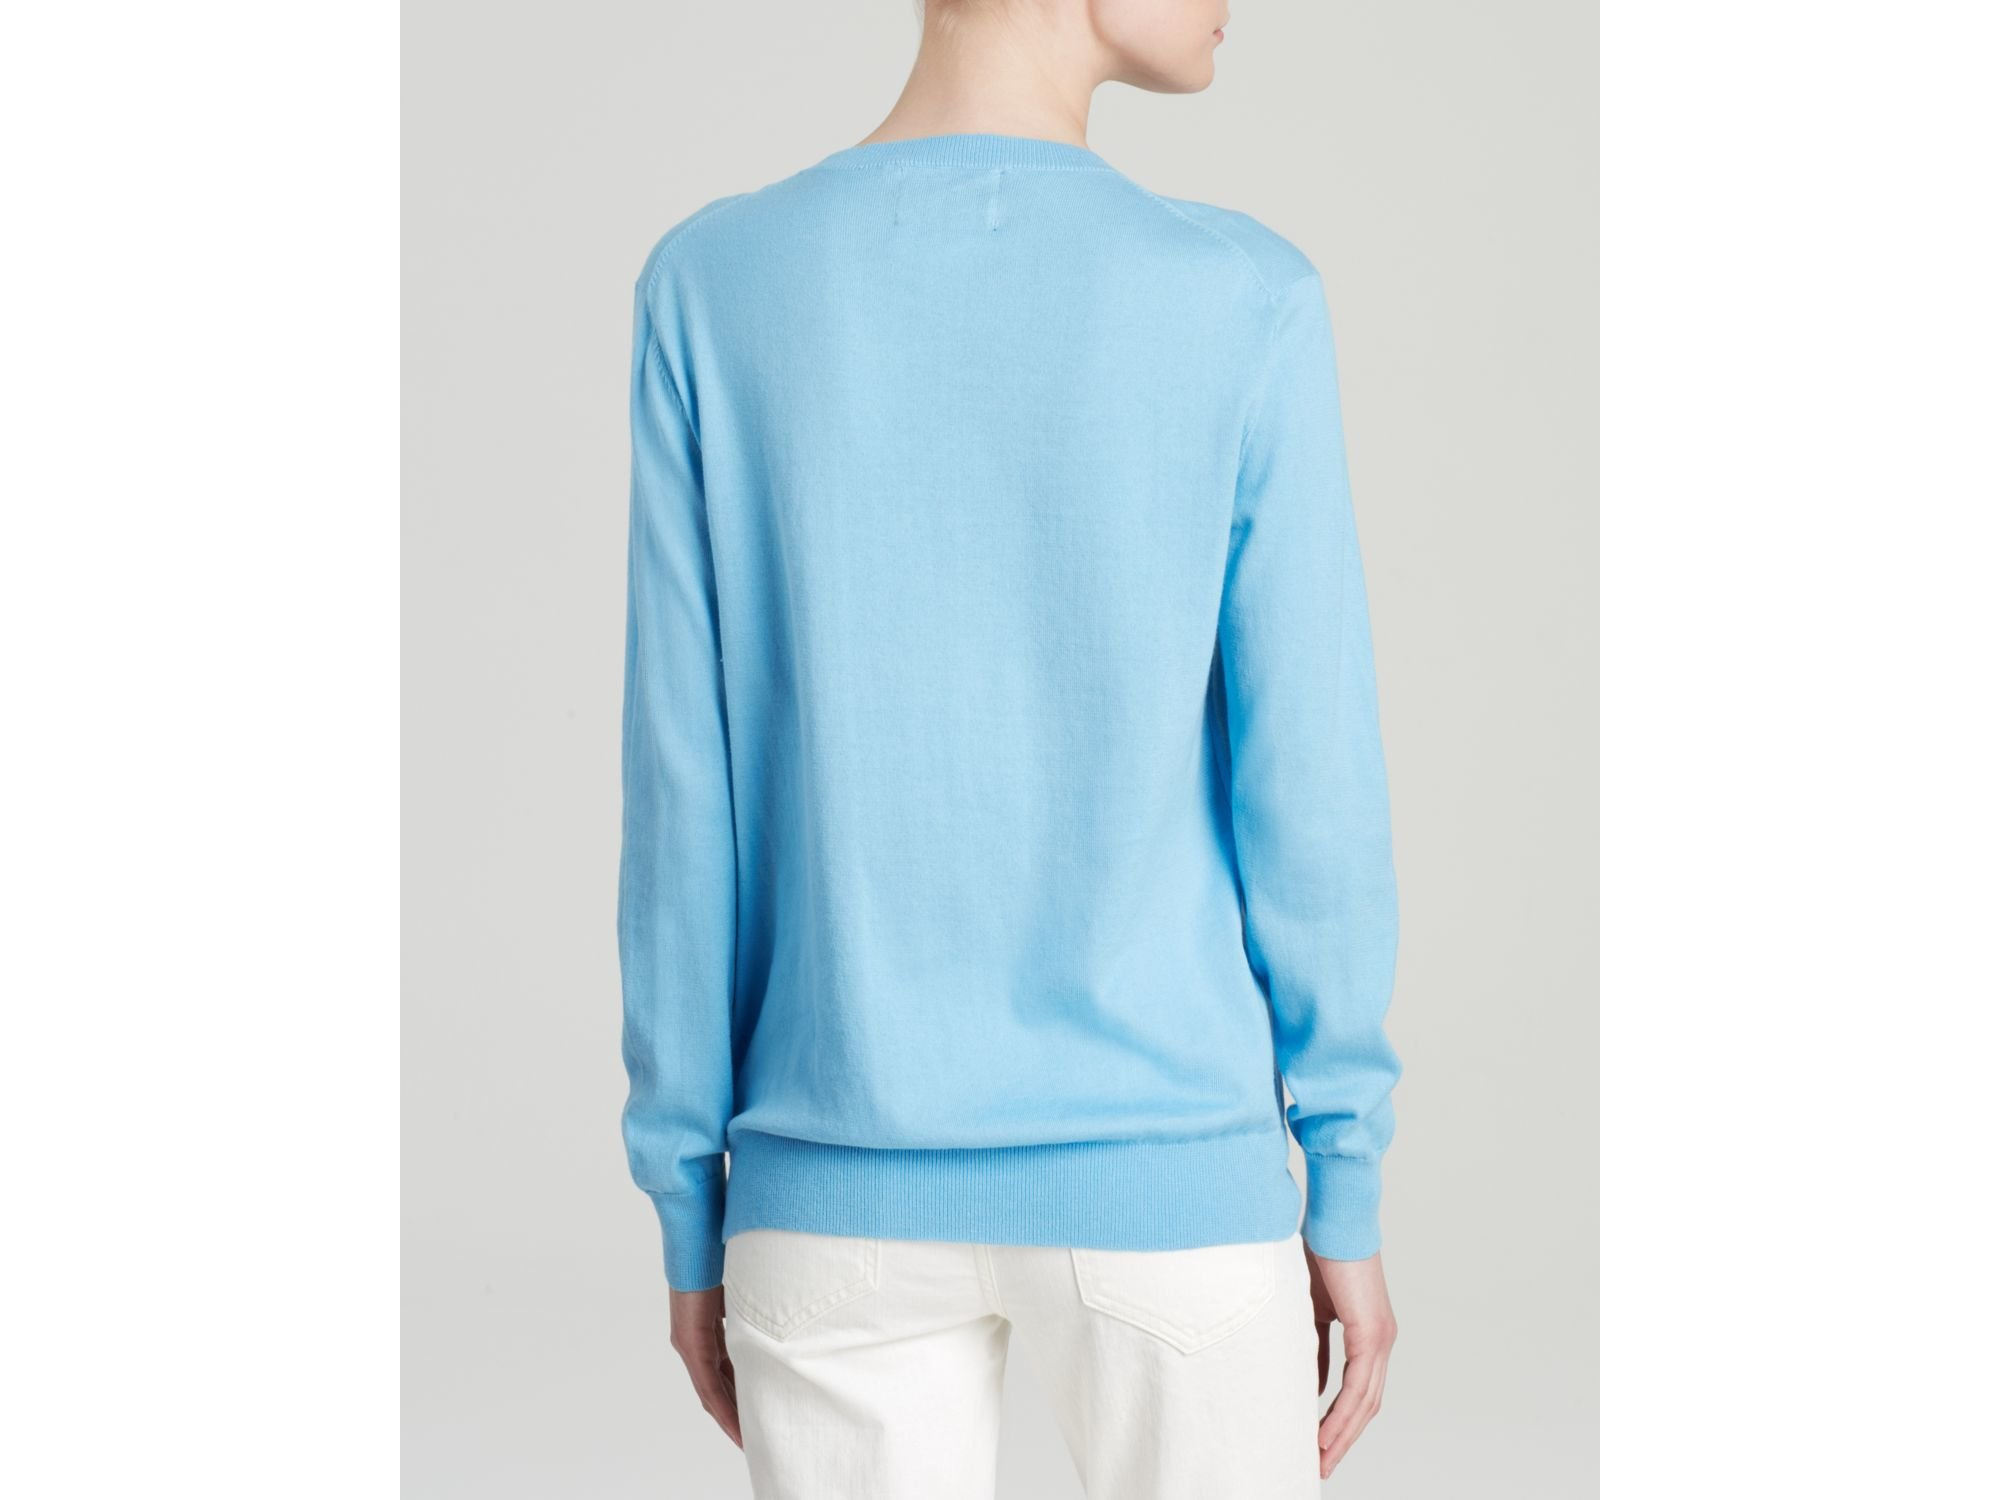 Markus lupfer Sweater - Ice Cream Sequin in Blue | Lyst